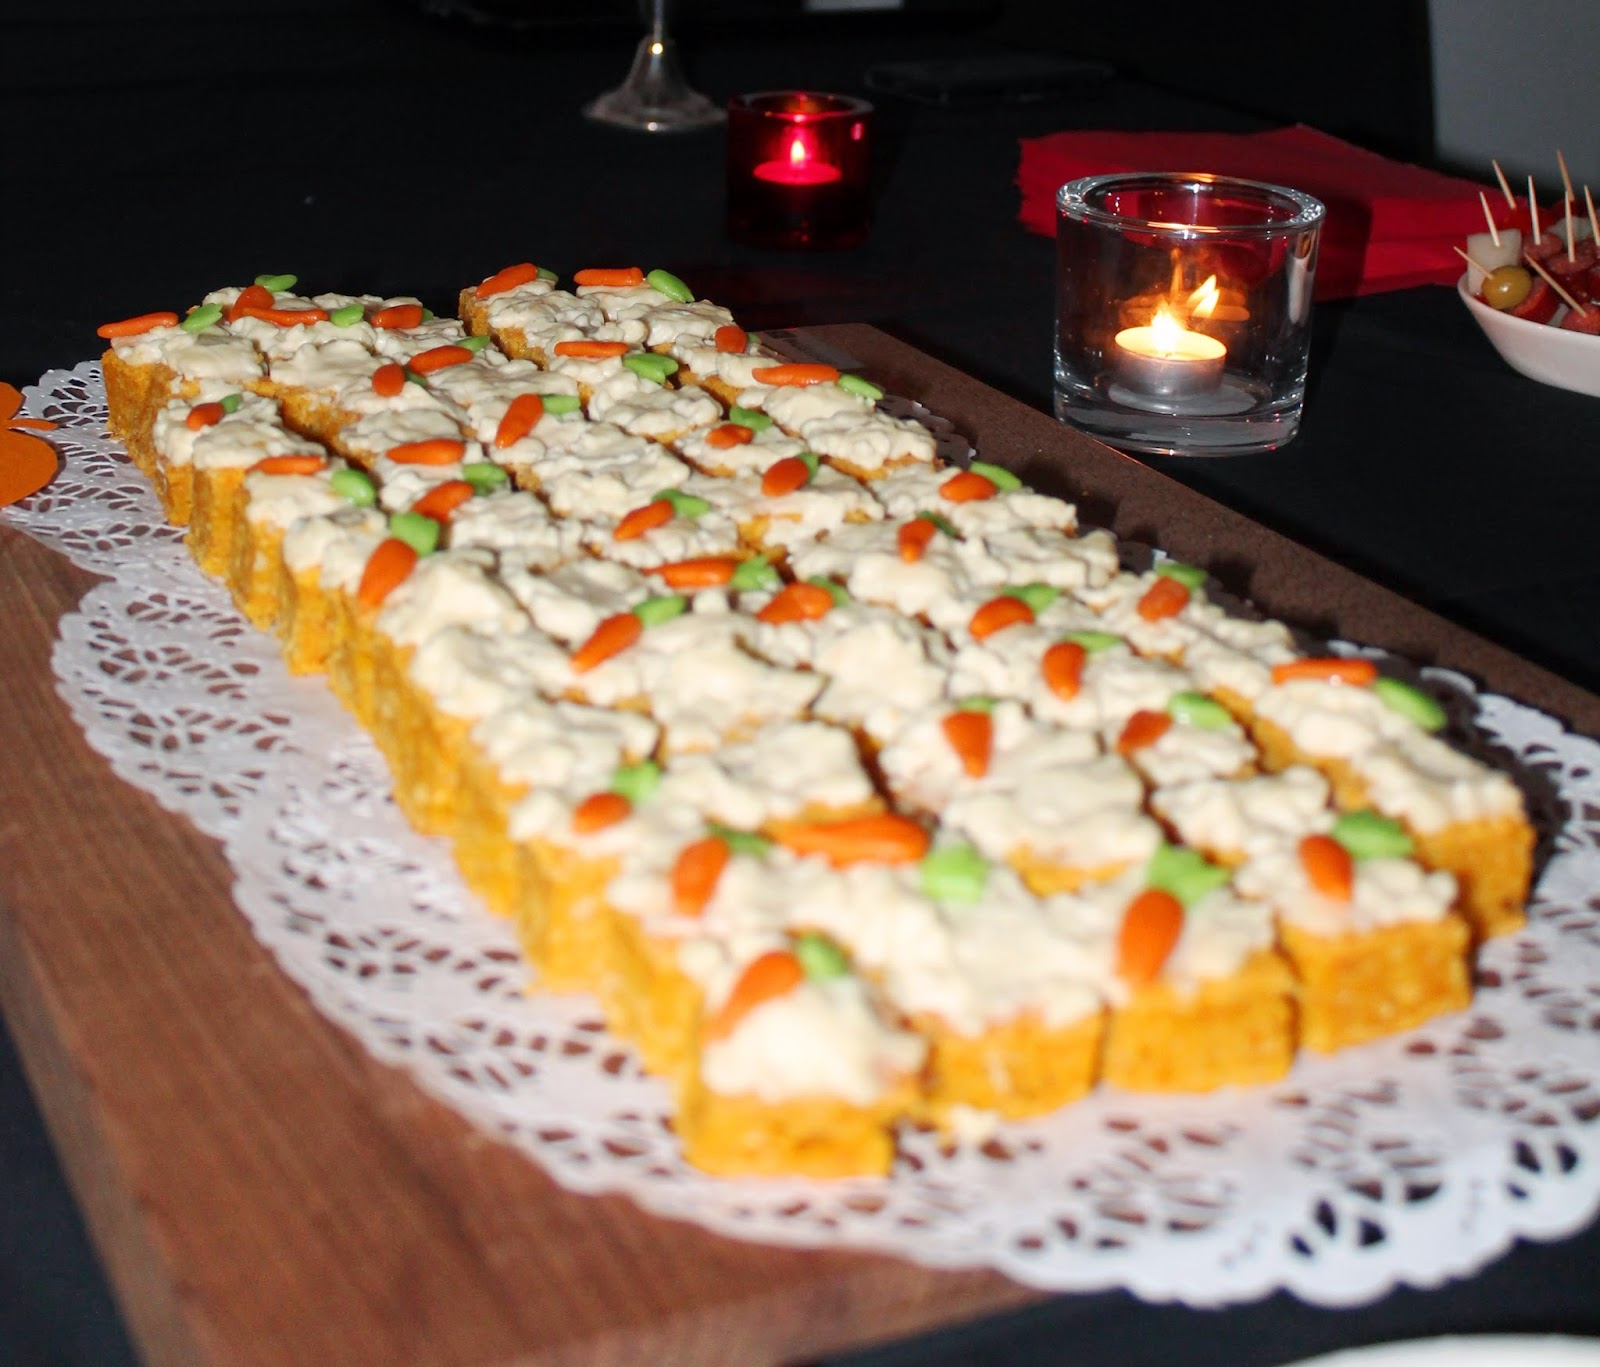 small carrot cake bites, great party, cocktail party or wedding desserts